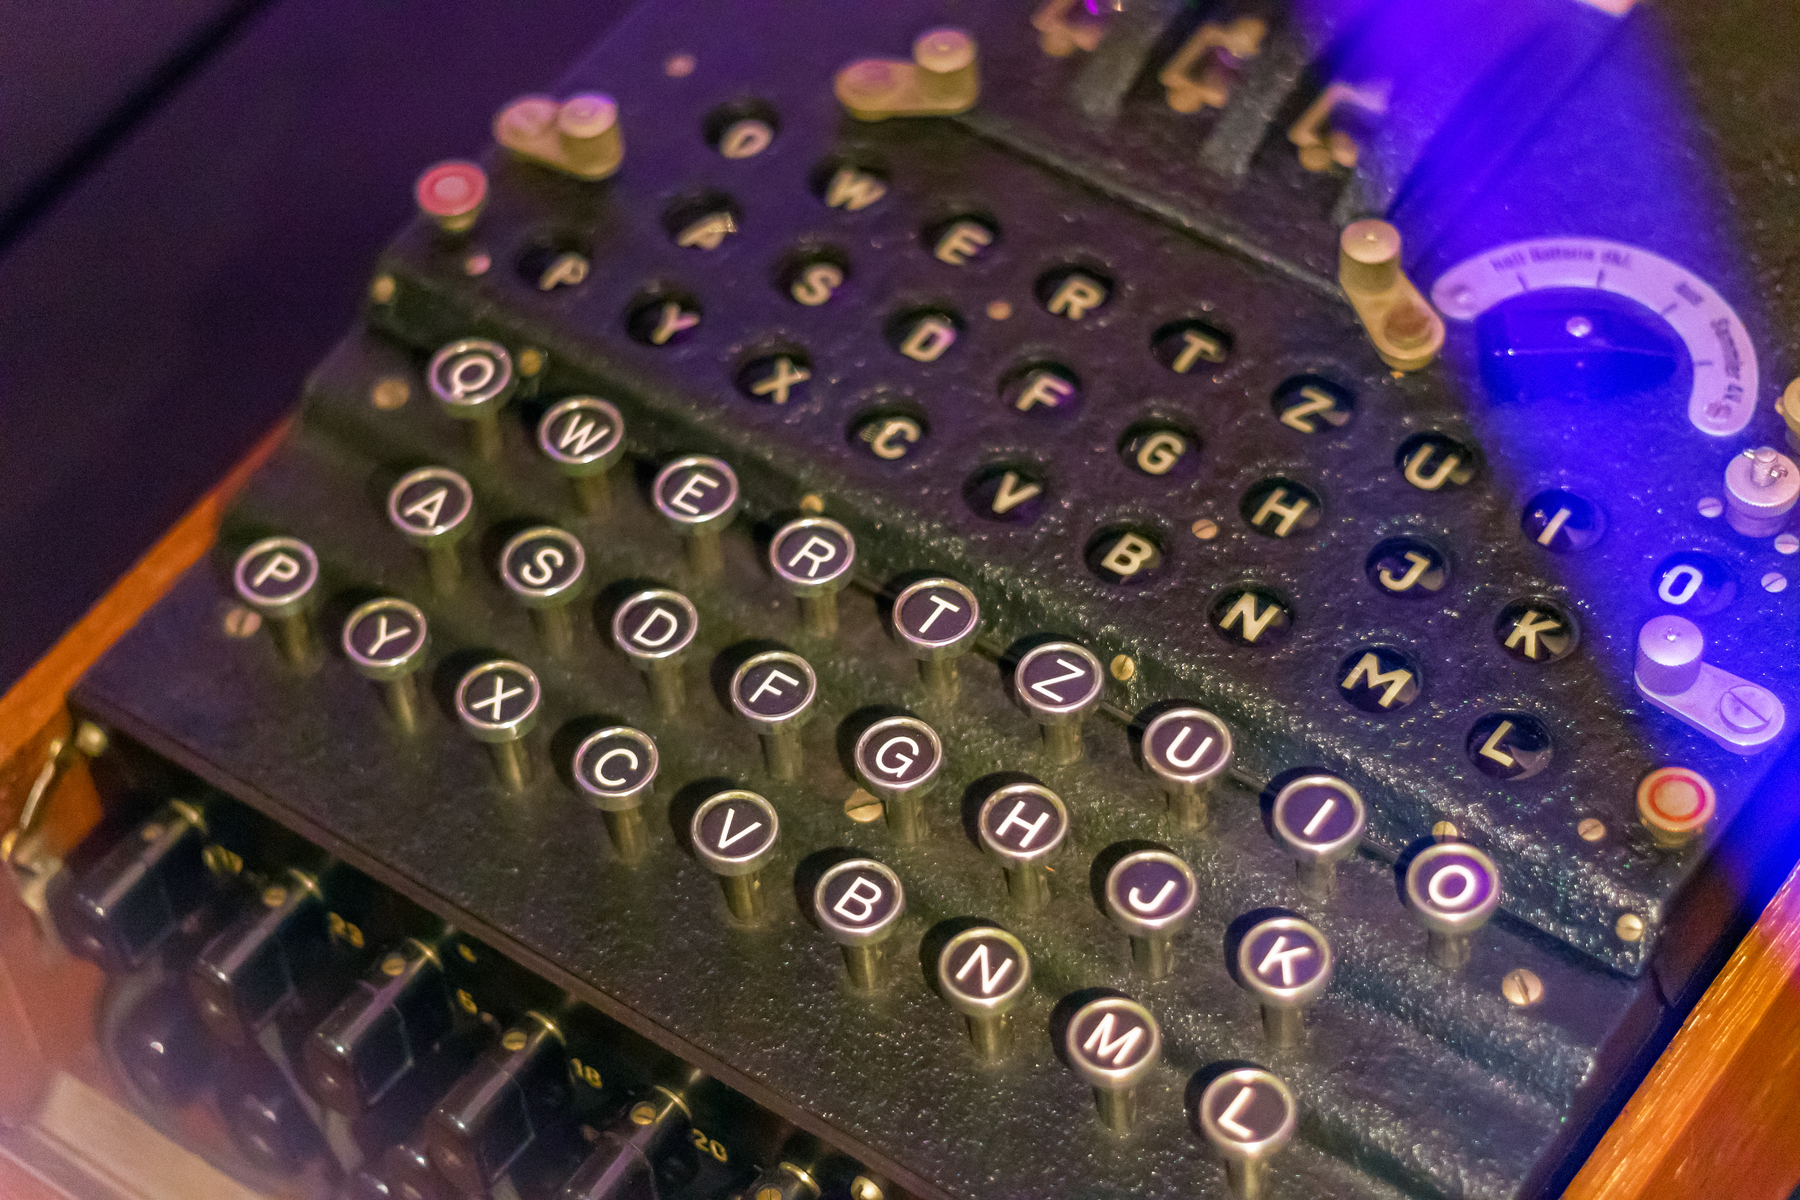 From cracking the Enigma to decoding living systems: Turing's gifts